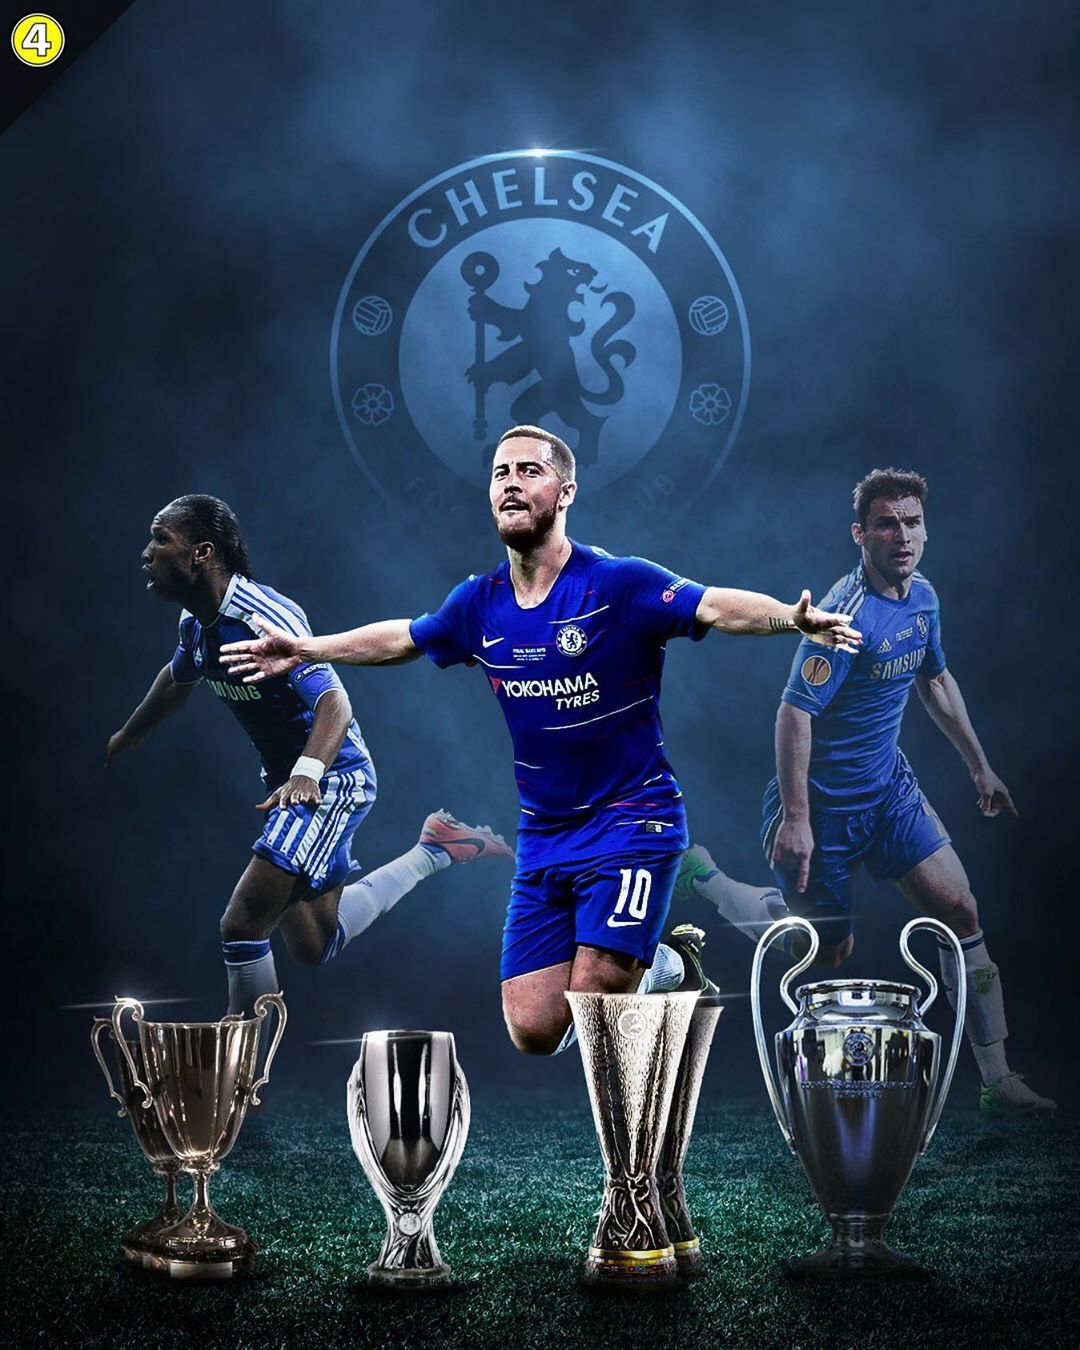 Pin on Chelsea 1080x1350